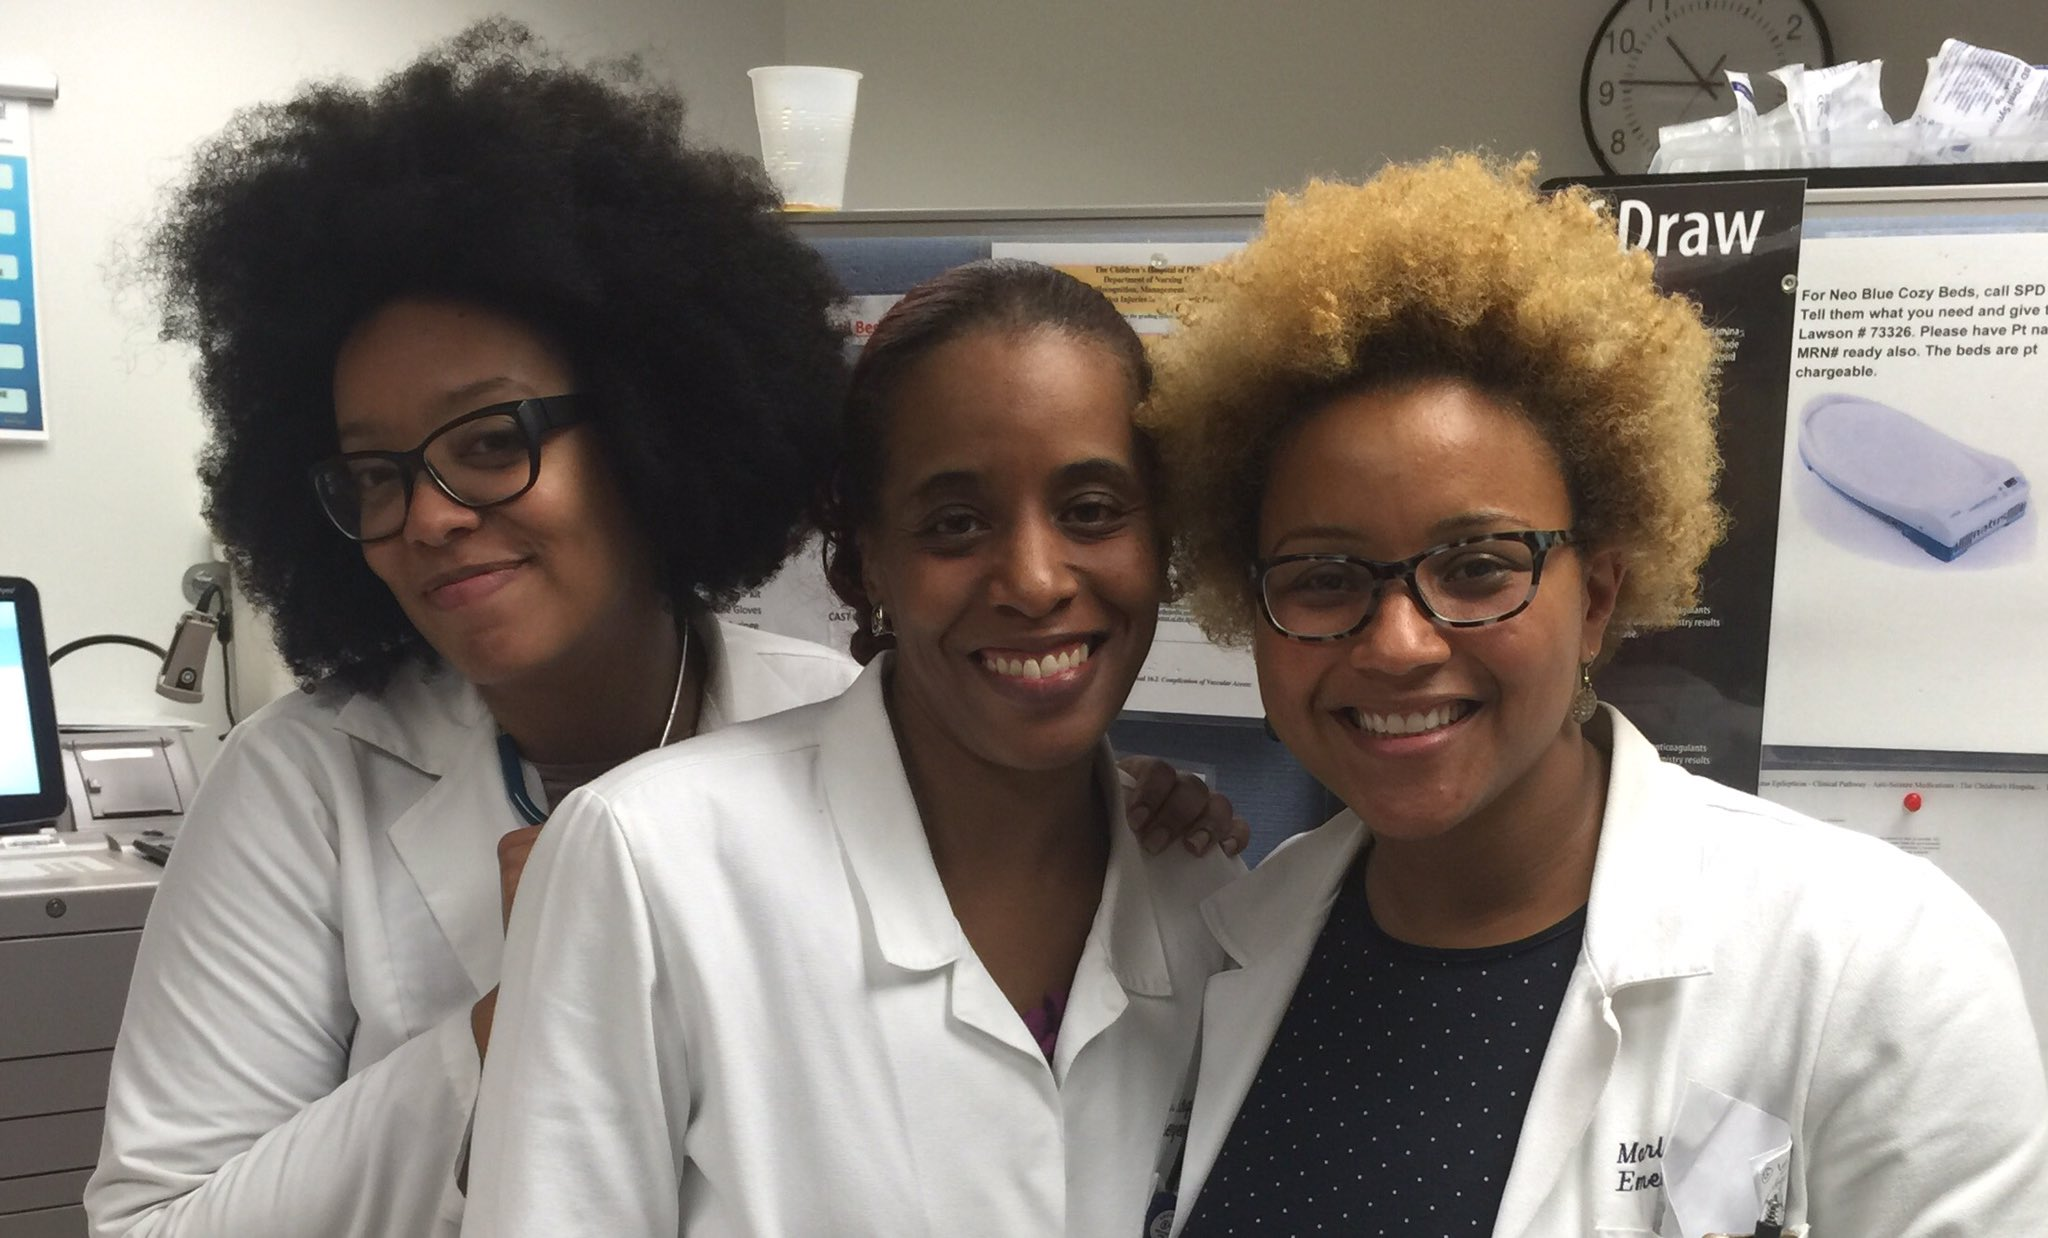 Black women doctors protesting racism with hashtag campaign